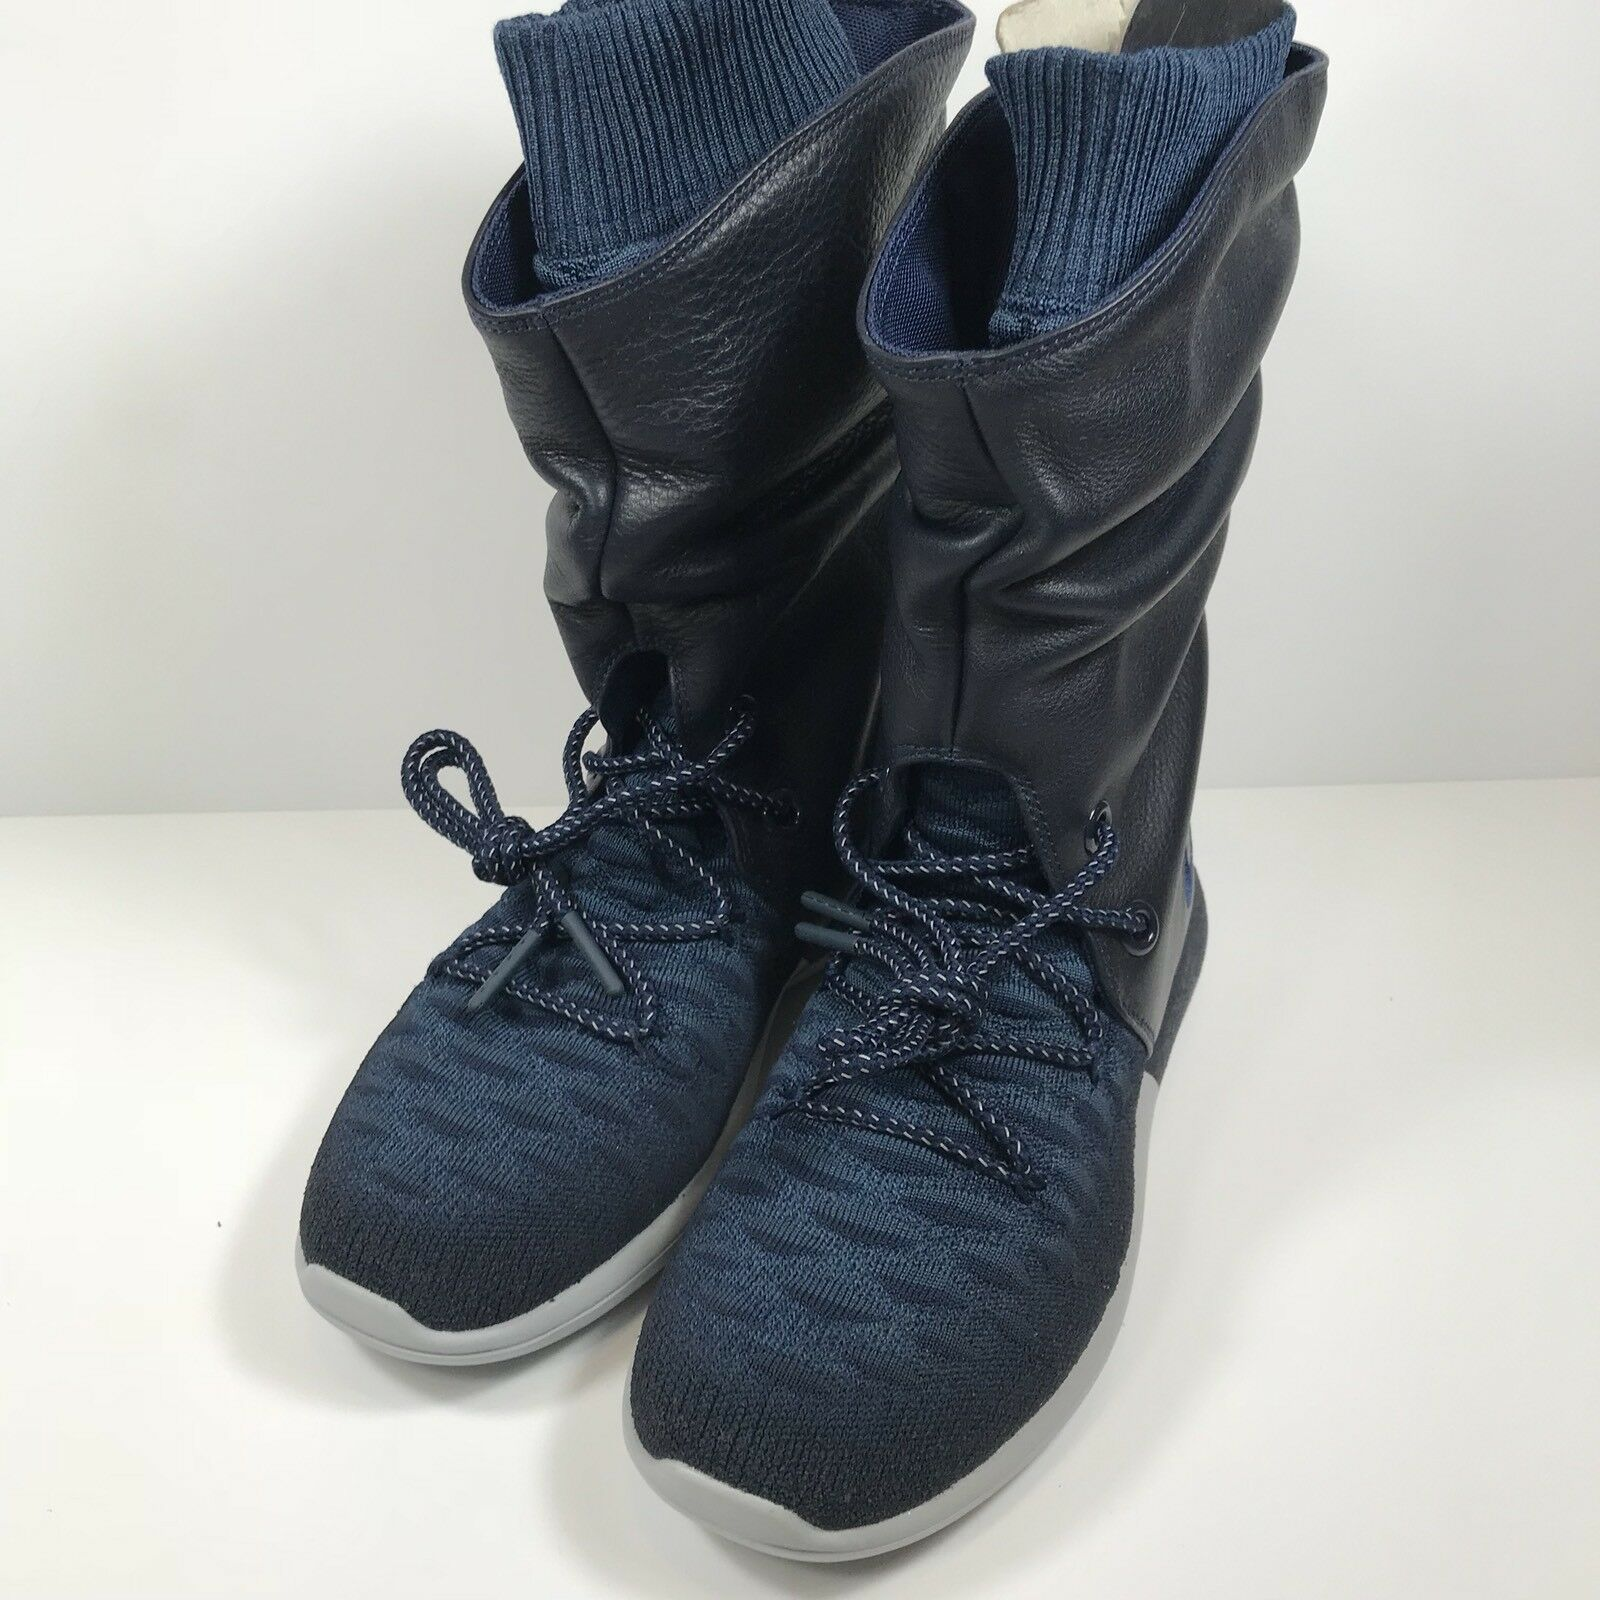 225 New Womens Nike Roshe Two Flyknit Hi Leather Boots Size 6 bluee 861708 400